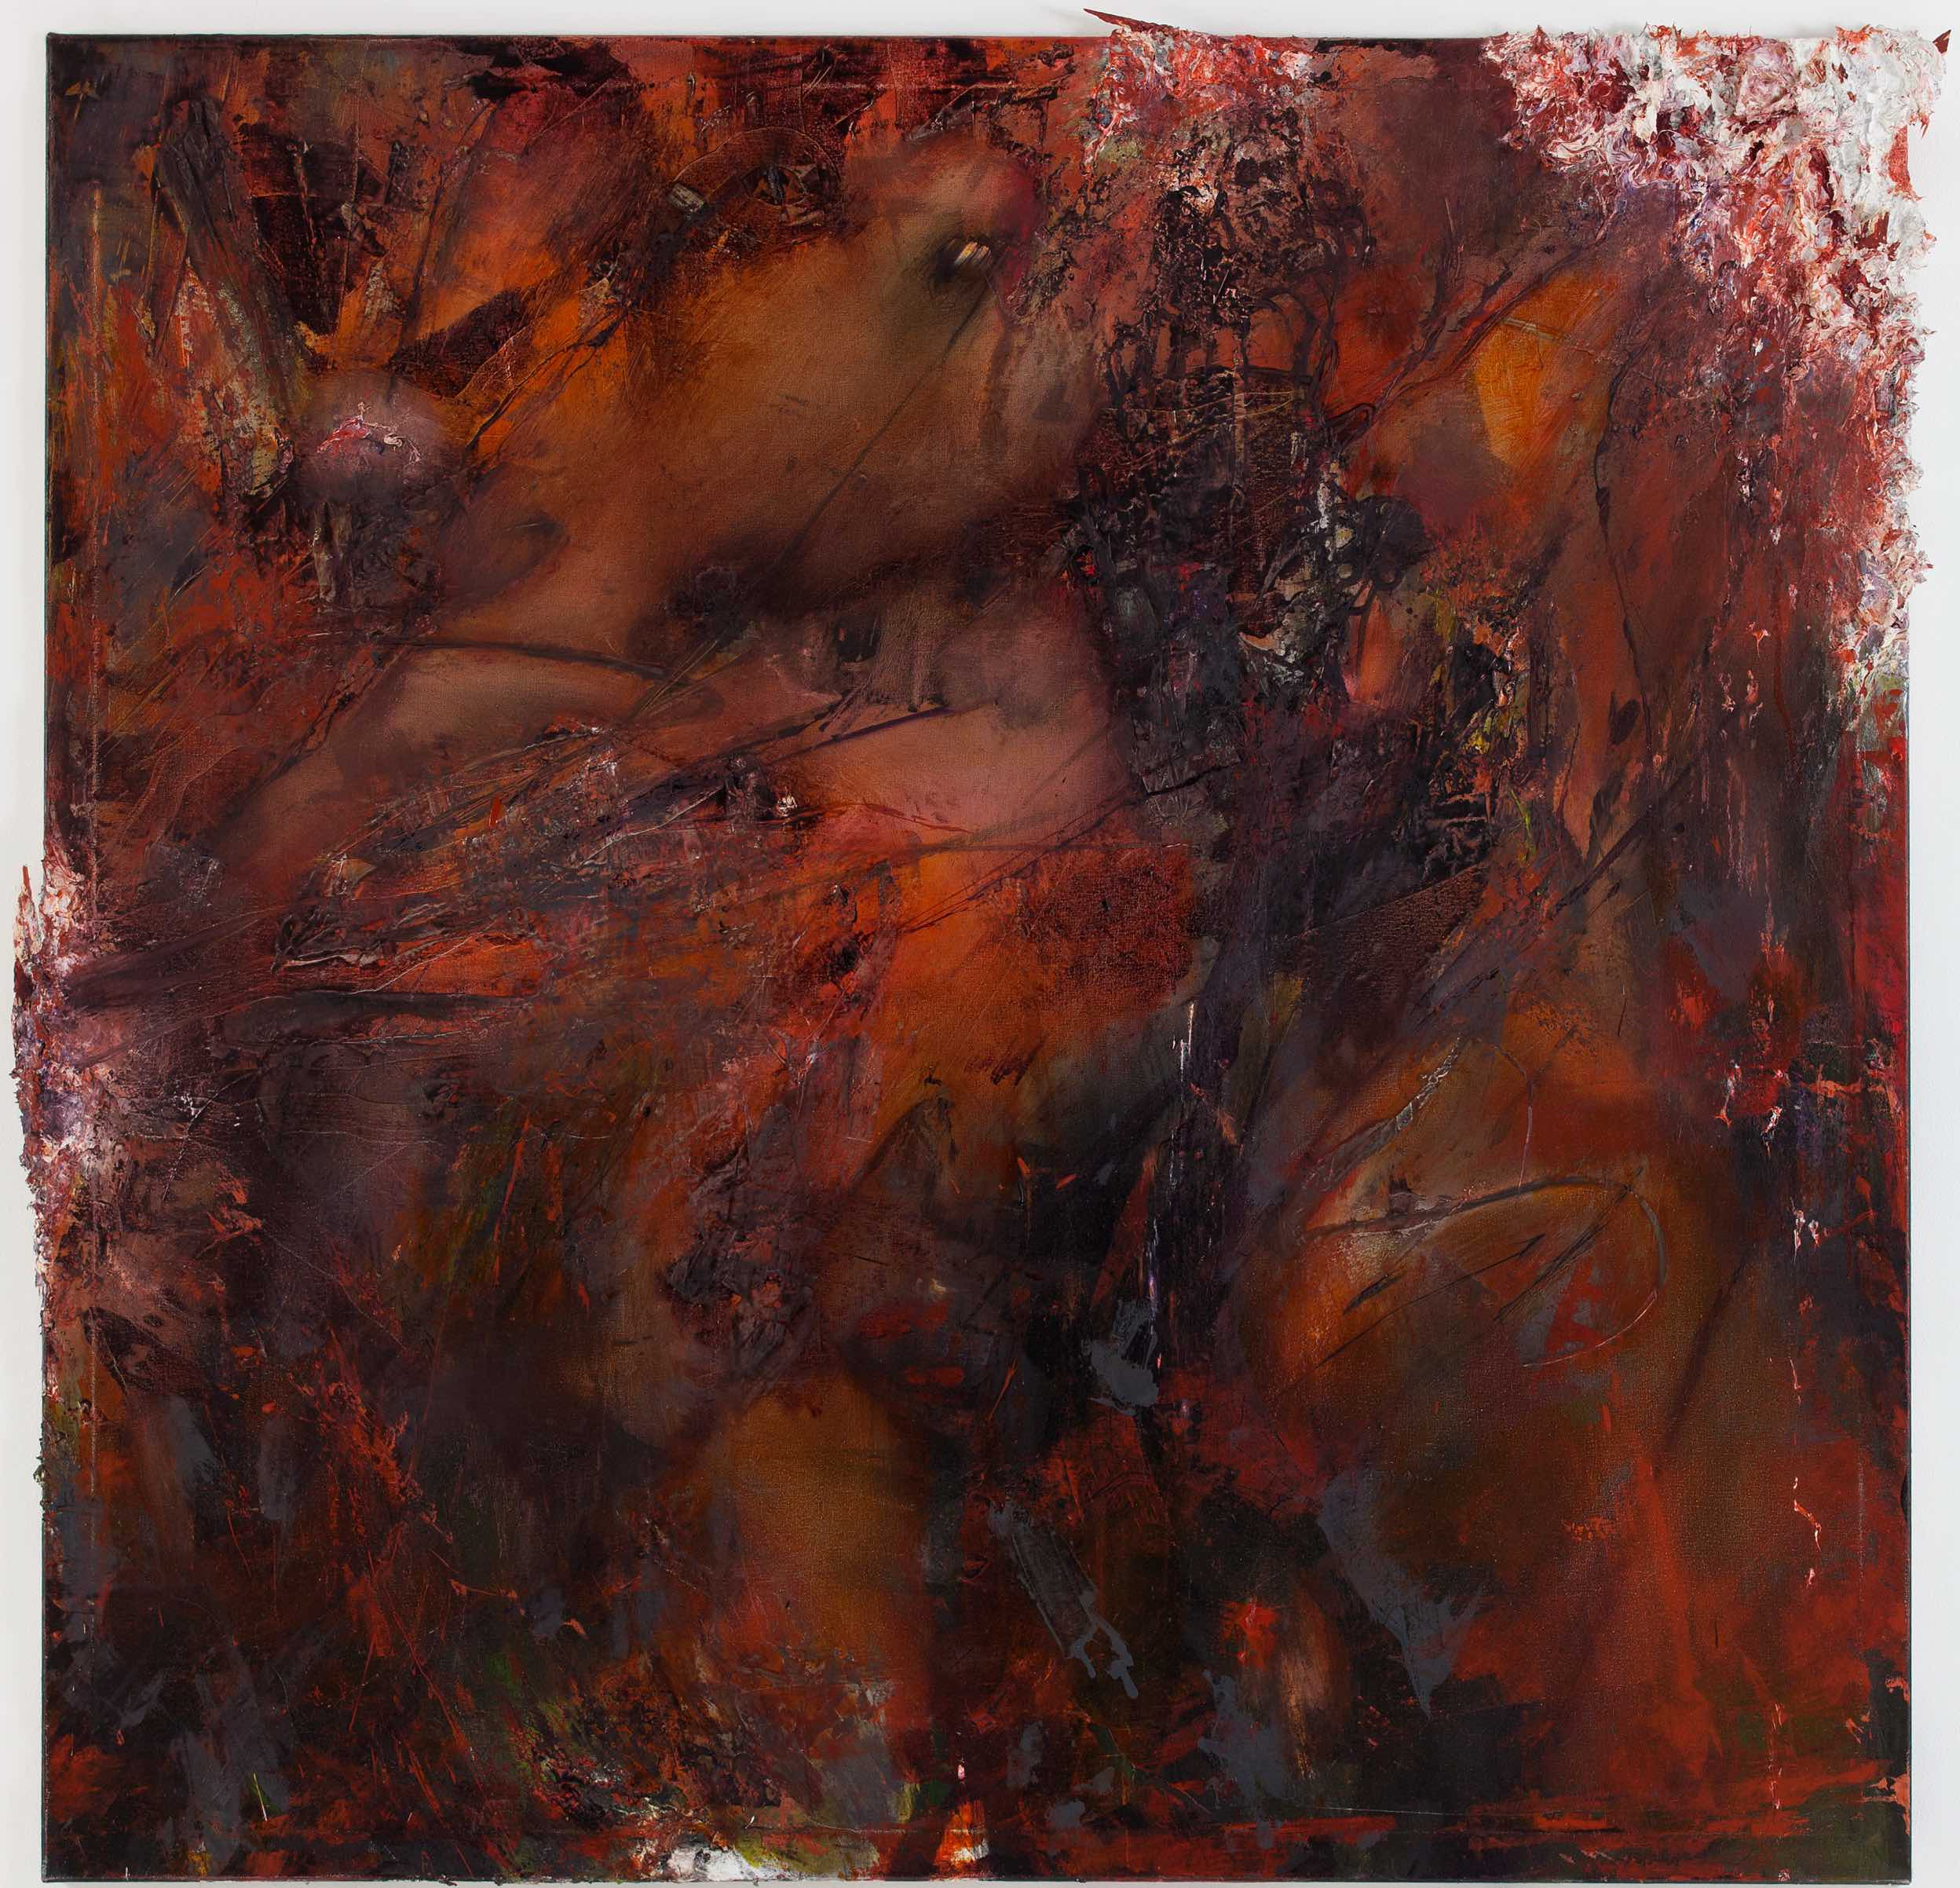 Rusty Pipes / 2012 / acrylic, wood, oil on canvas / 55 x 55 inches / 140 x 140 cm